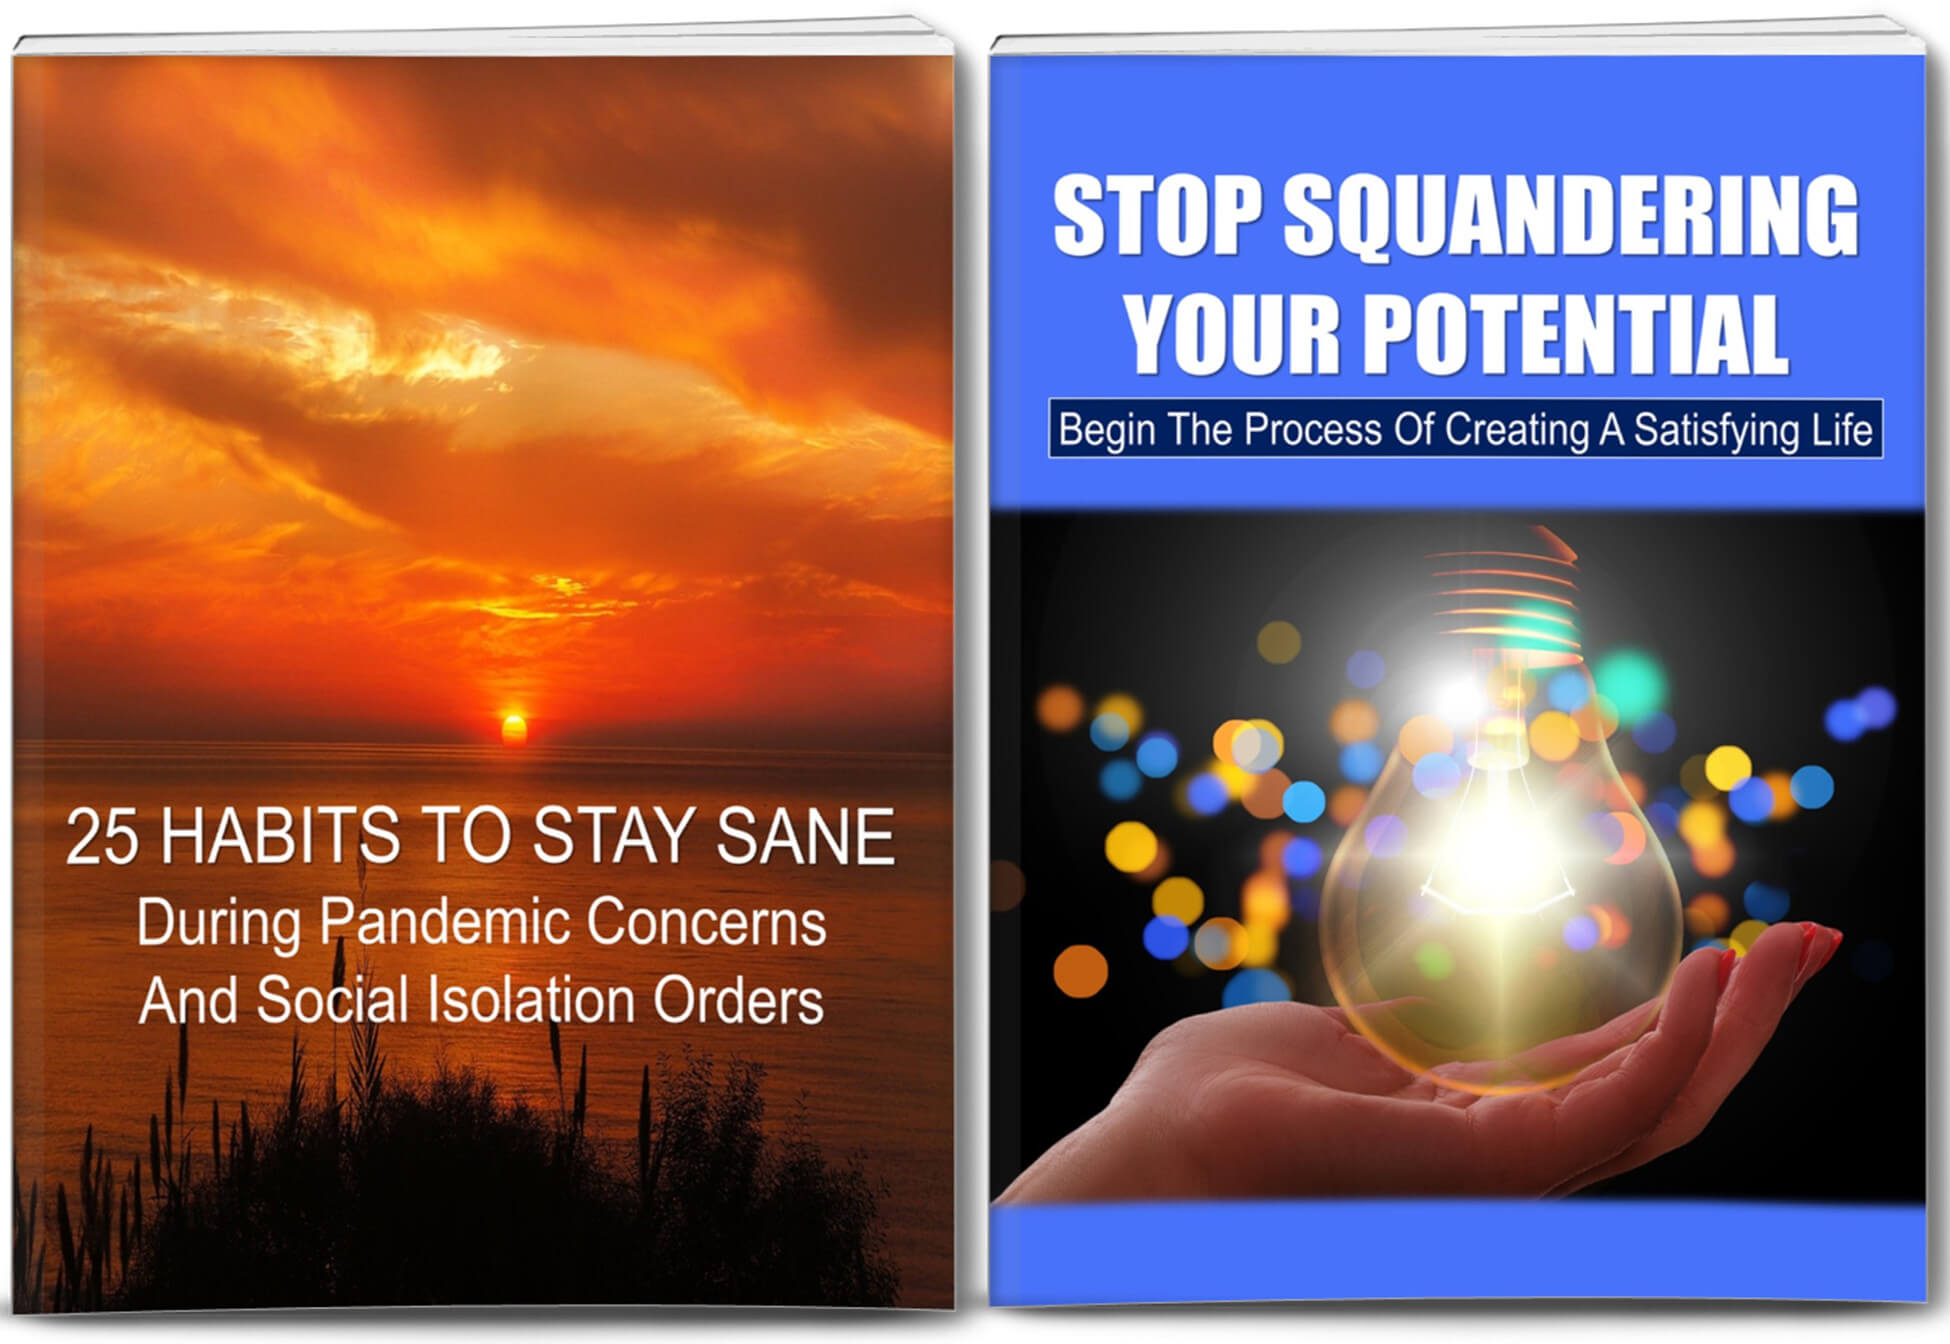 amalytic mind for self improvement and pandemic mental health plr